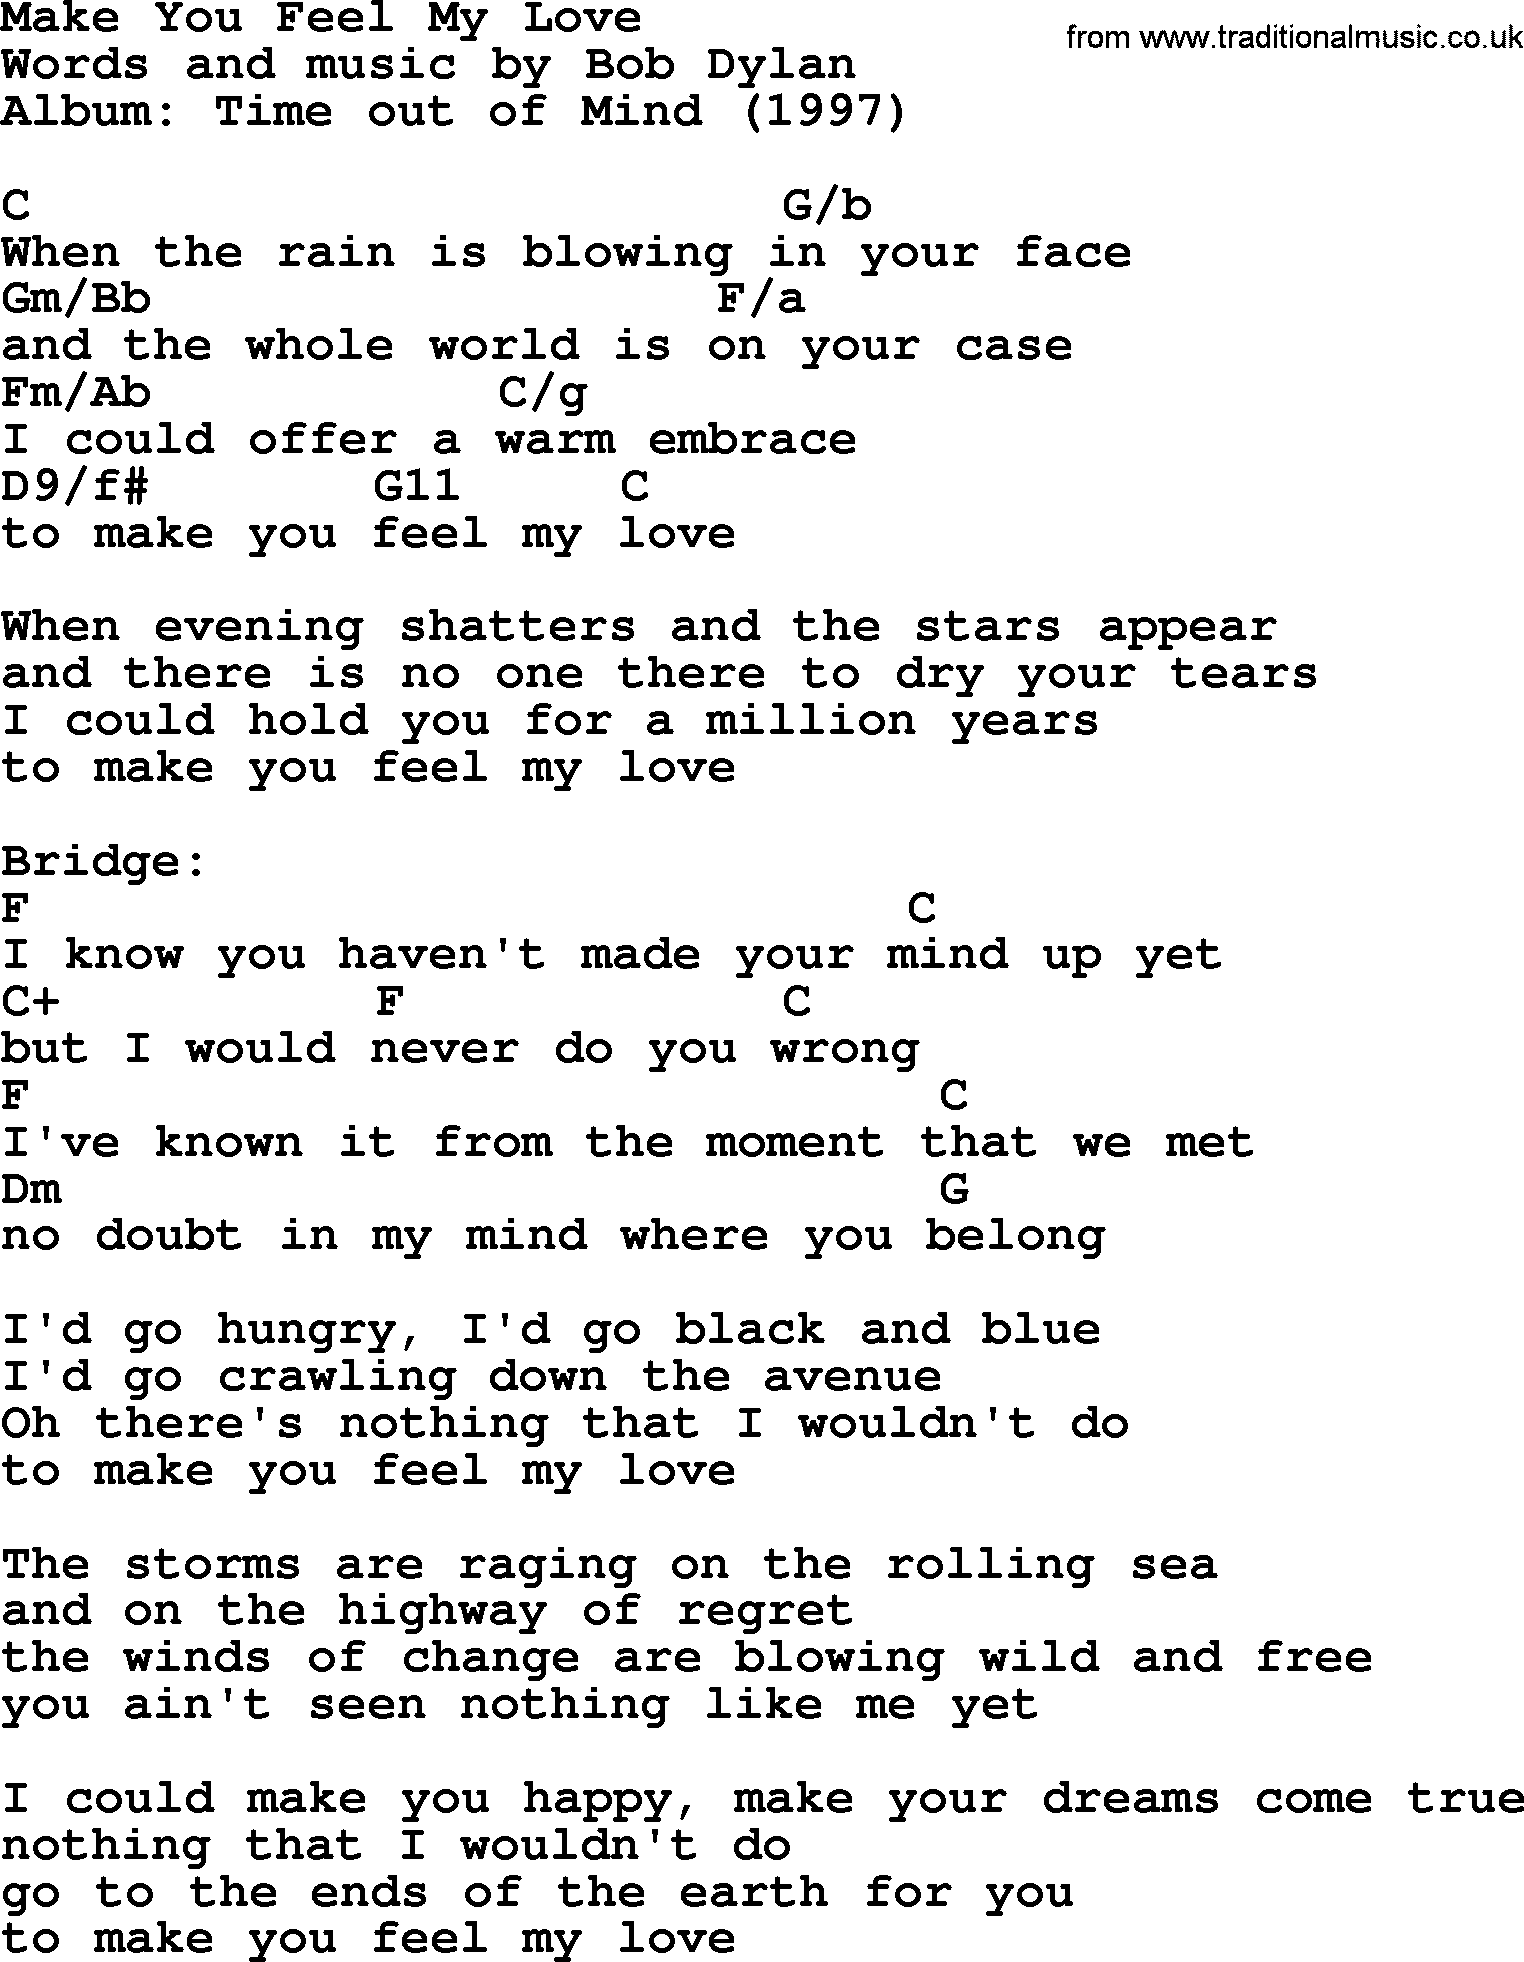 Bob Dylan song - Make You Feel My Love, lyrics and chords